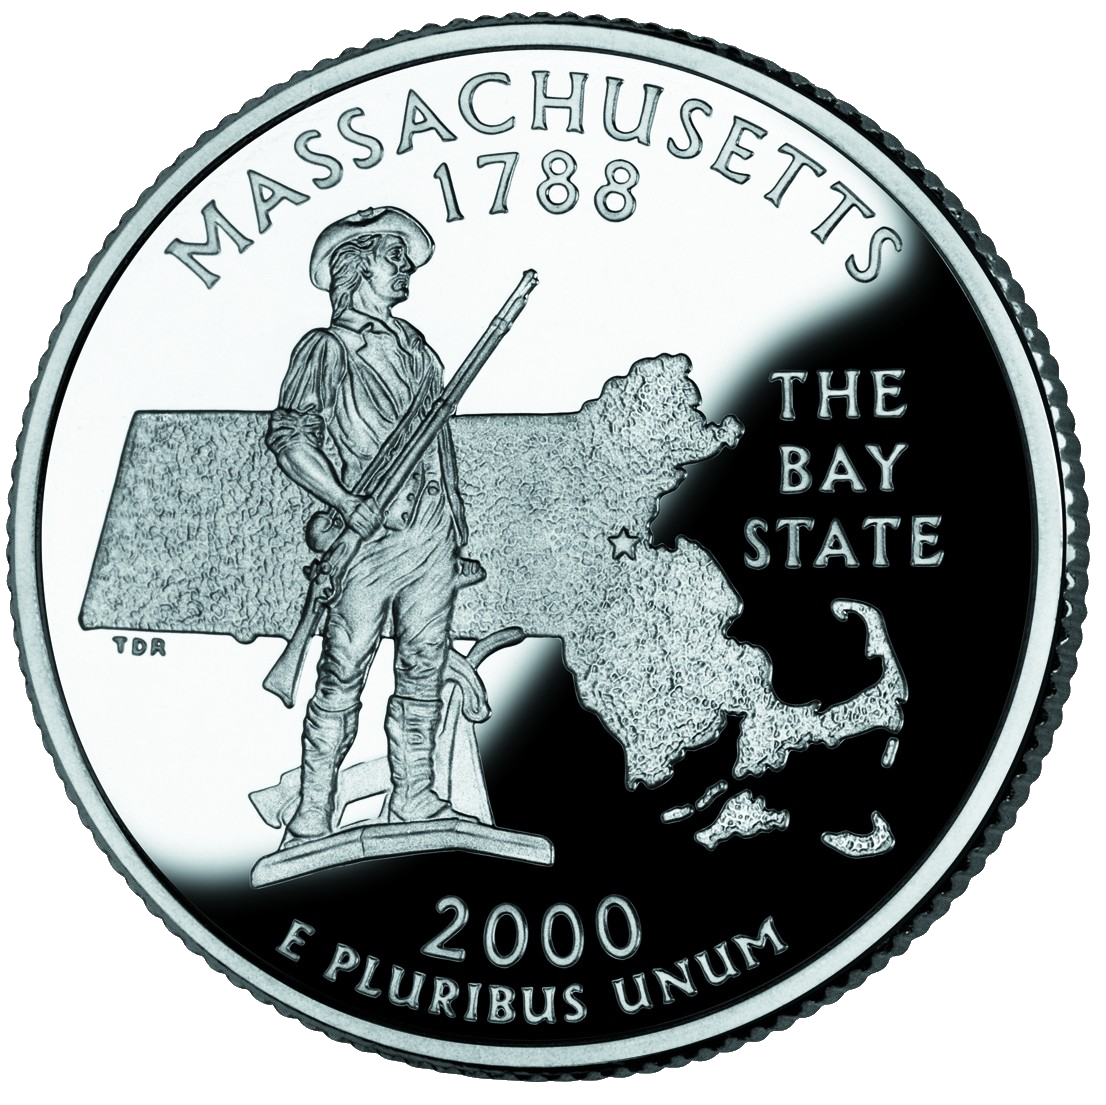 United States 2000 commemorative quarter dollar (US $0.25) for Massachusetts depicting The Minute Man statue in Concord.